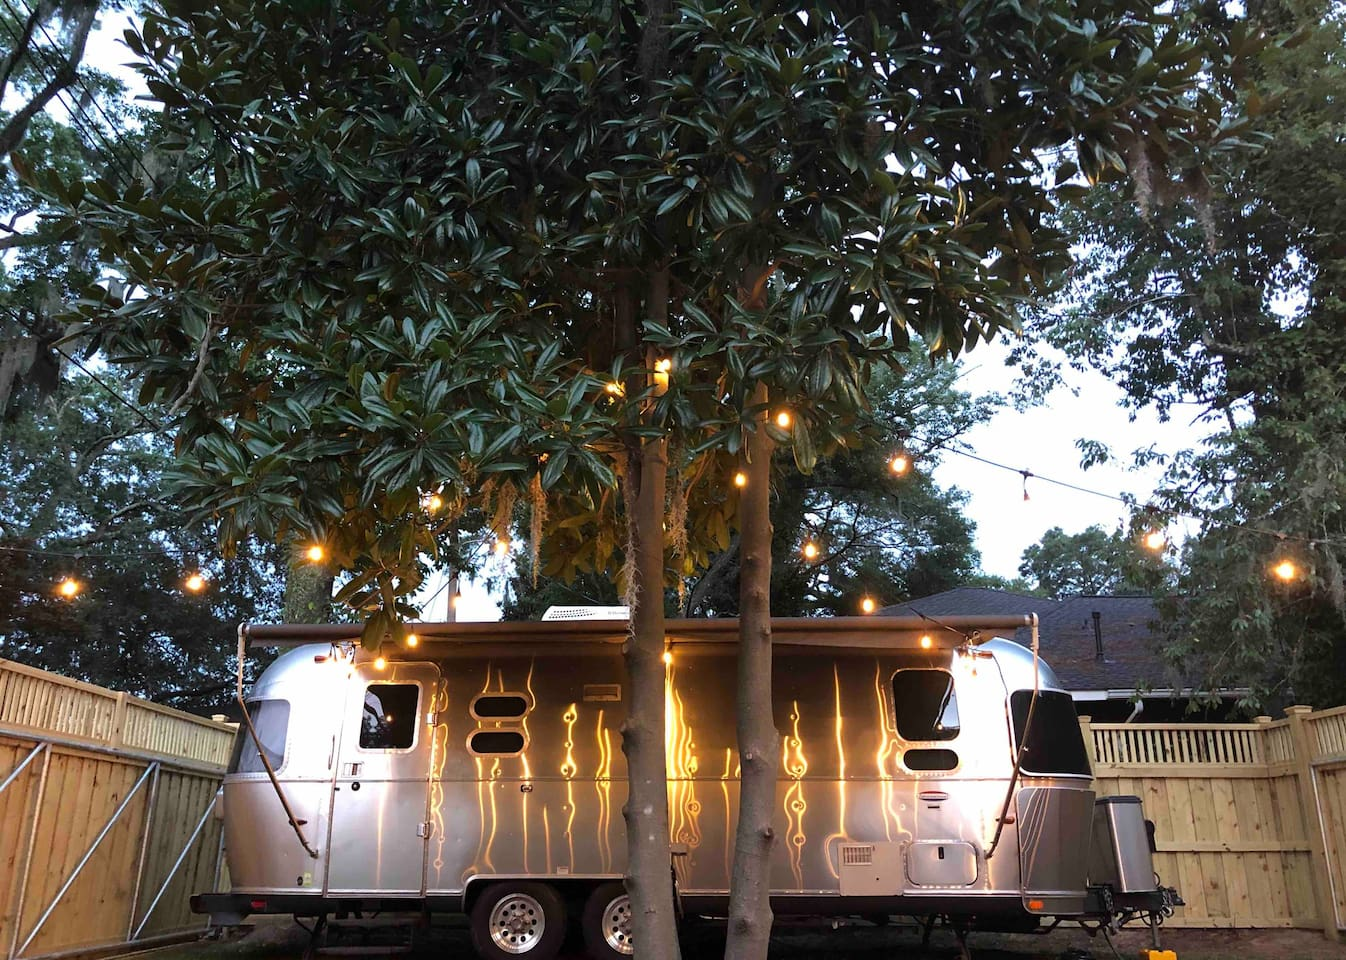 Silver Belle Airstream Airbnb in Savannah